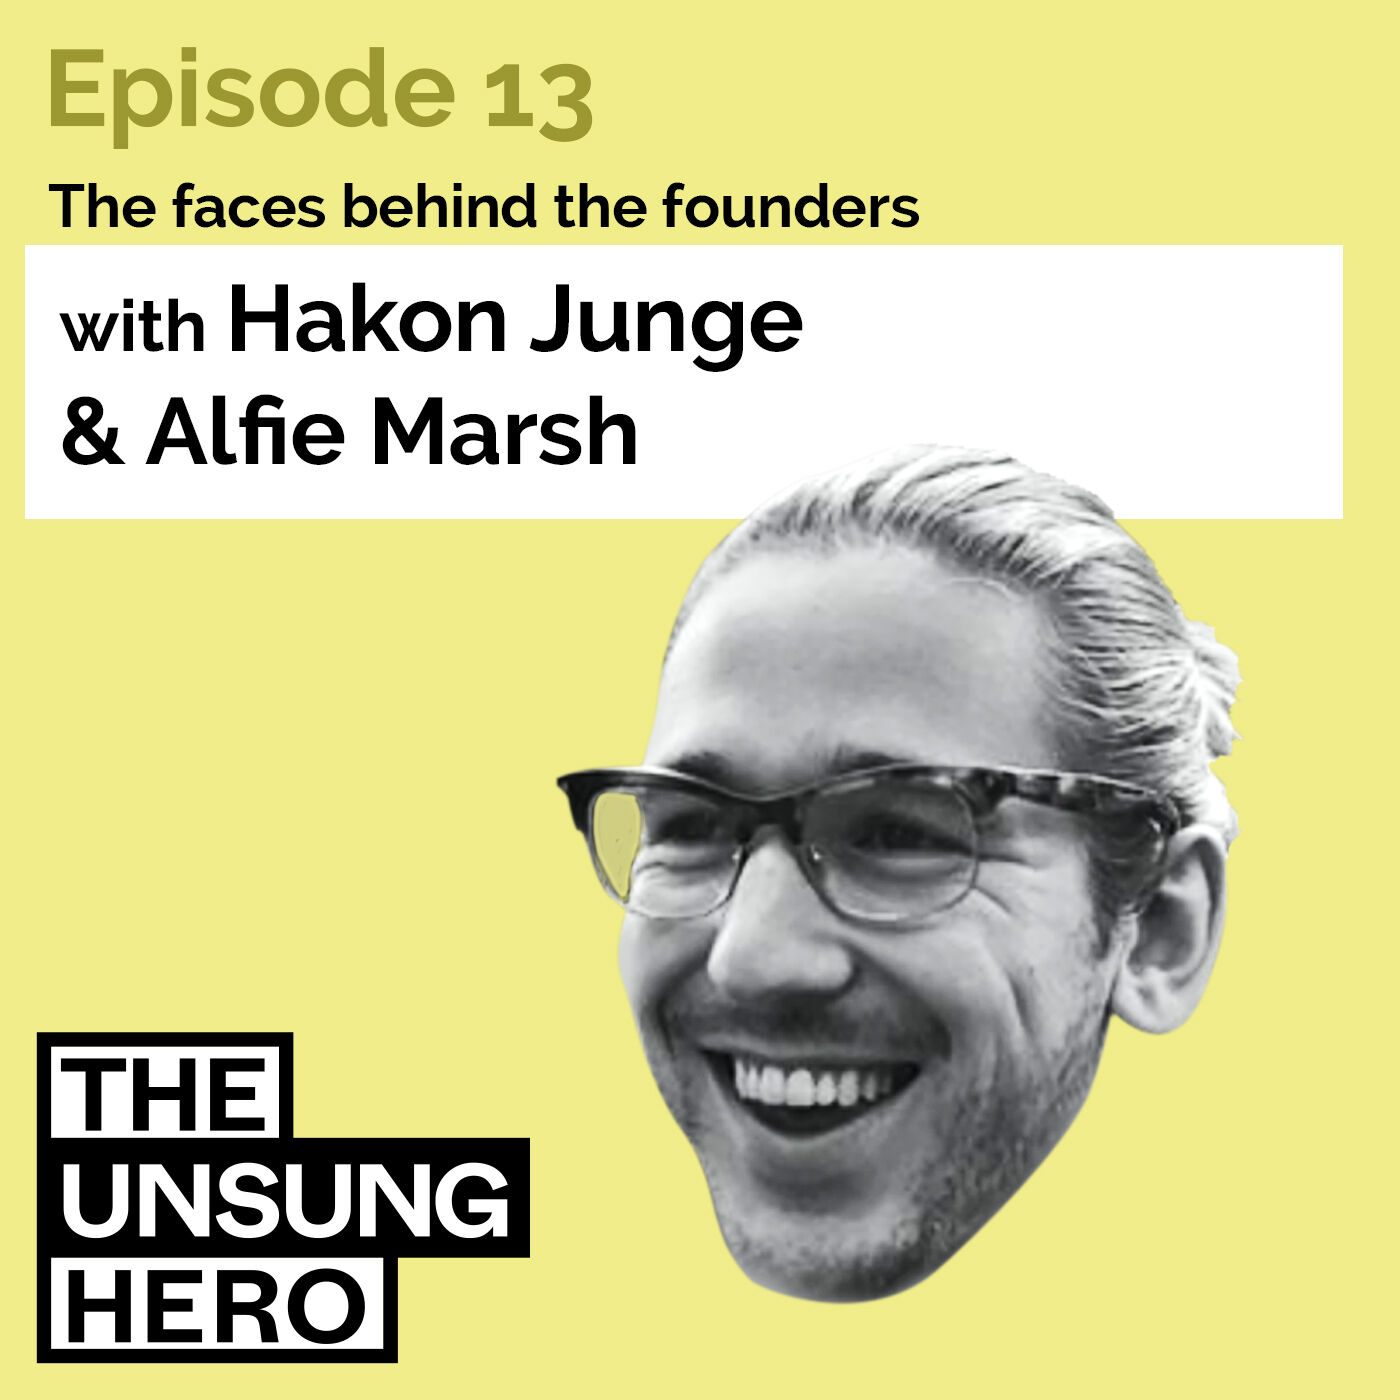 """Episode 13: """"The Fintech Growth Story Through Personal Branding"""" with Alfie Marsh from Spendesk"""